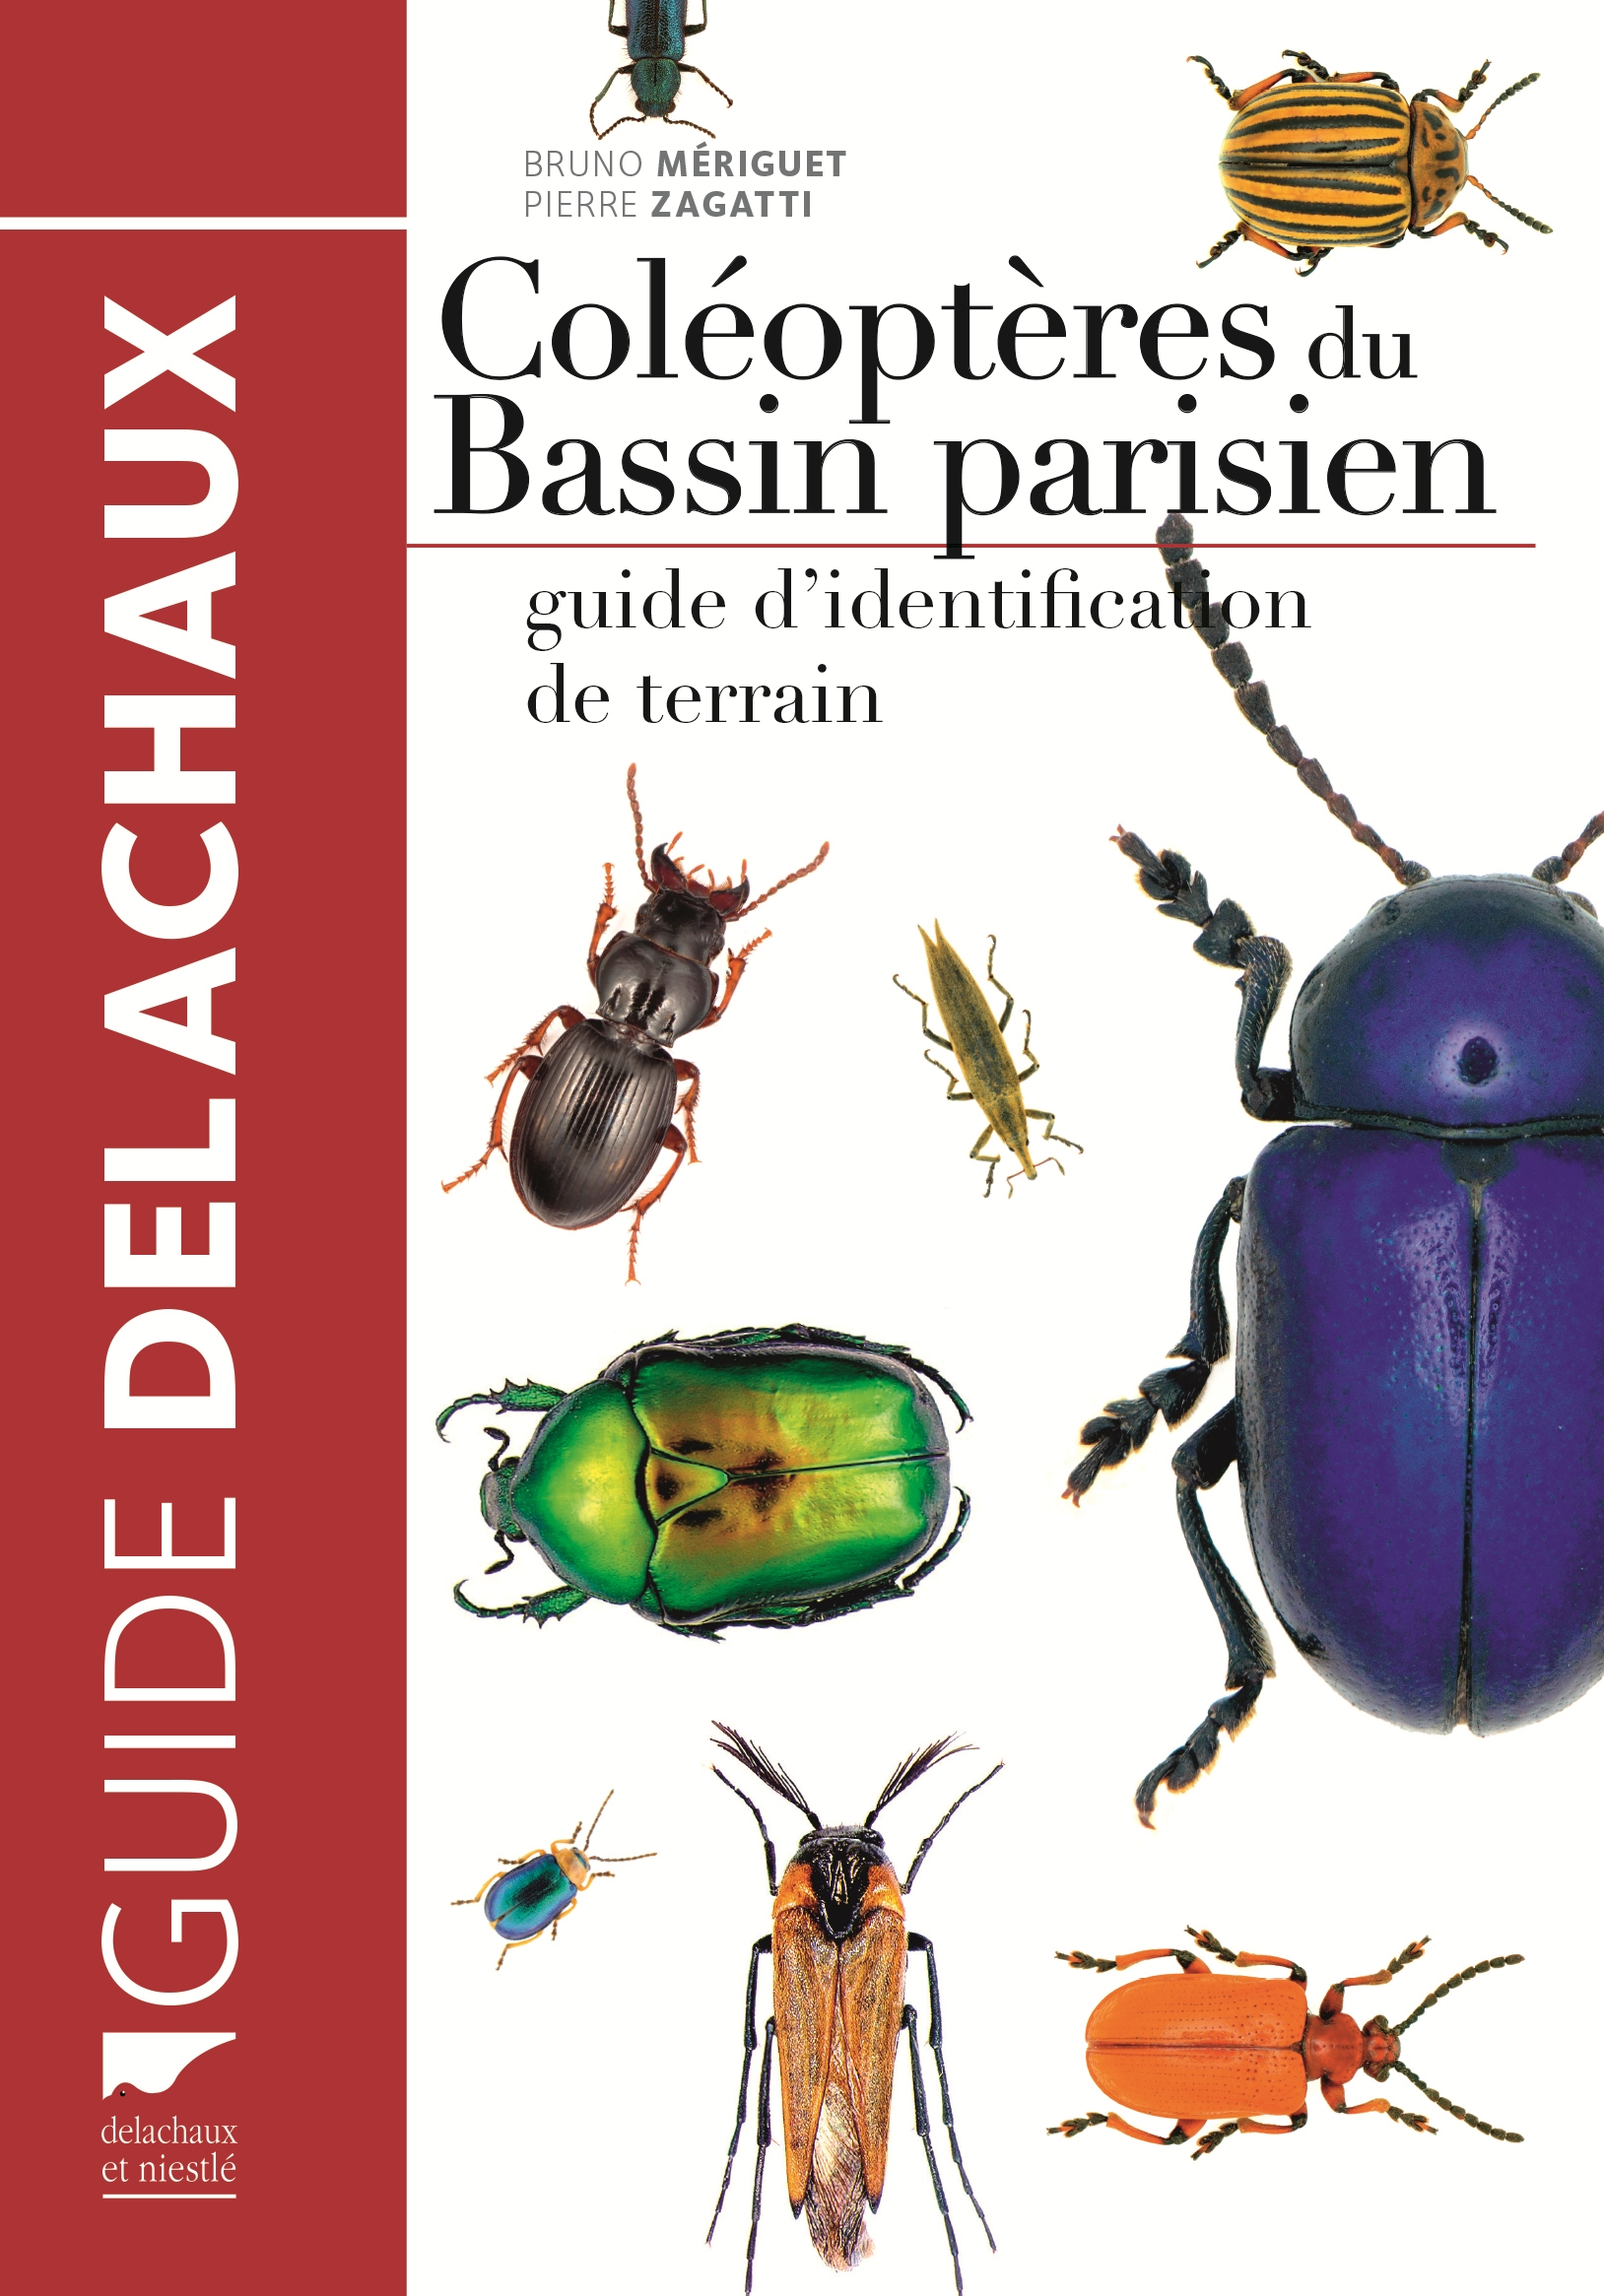 The beetles of the Paris Basin: interview of Bruno Mériguet